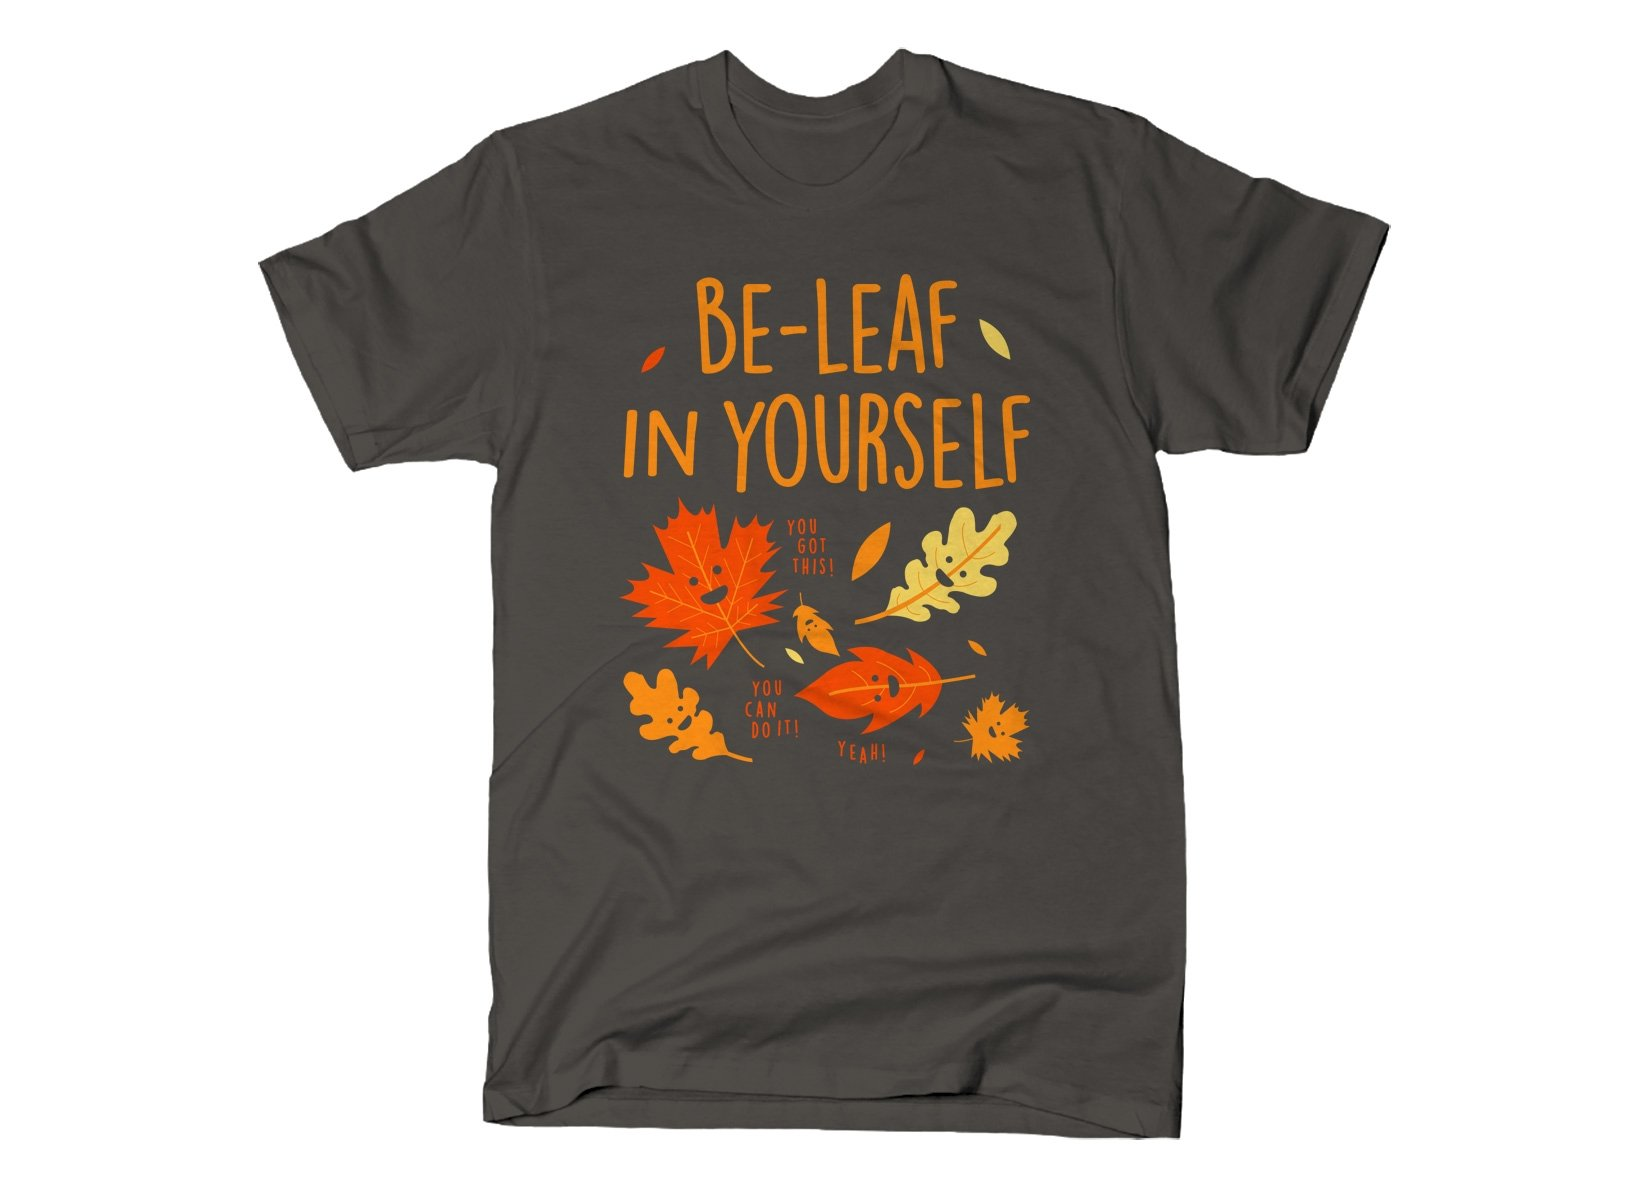 Be-Leaf In Yourself on Mens T-Shirt